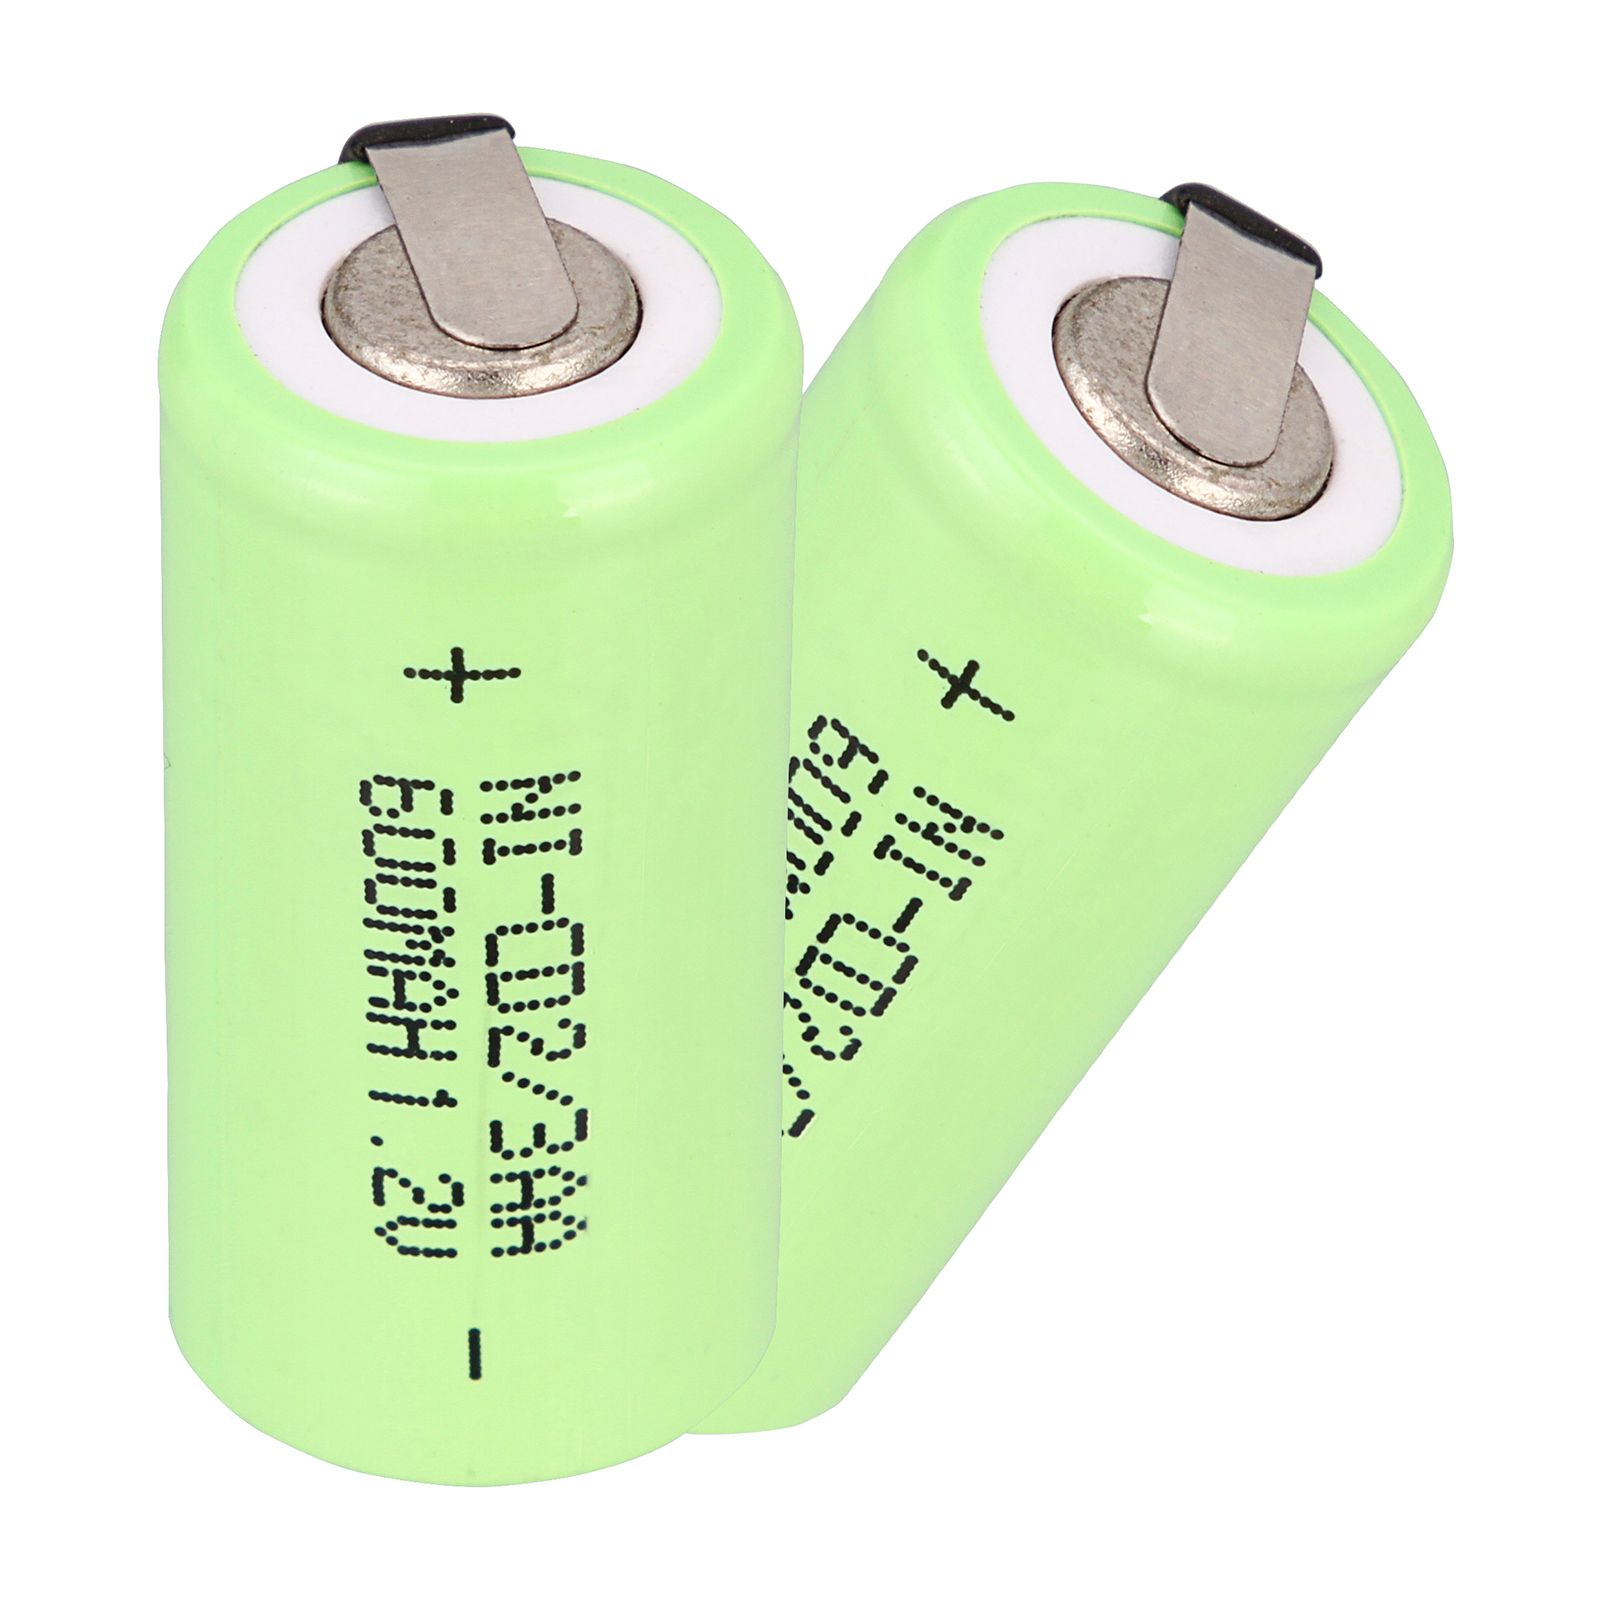 2~32PCS 2/3 <font><b>AA</b></font> <font><b>nicd</b></font> <font><b>1.2V</b></font> <font><b>Battery</b></font> 600 Ni-CD Rechargeable <font><b>Battery</b></font> 1.2 V Green Color image